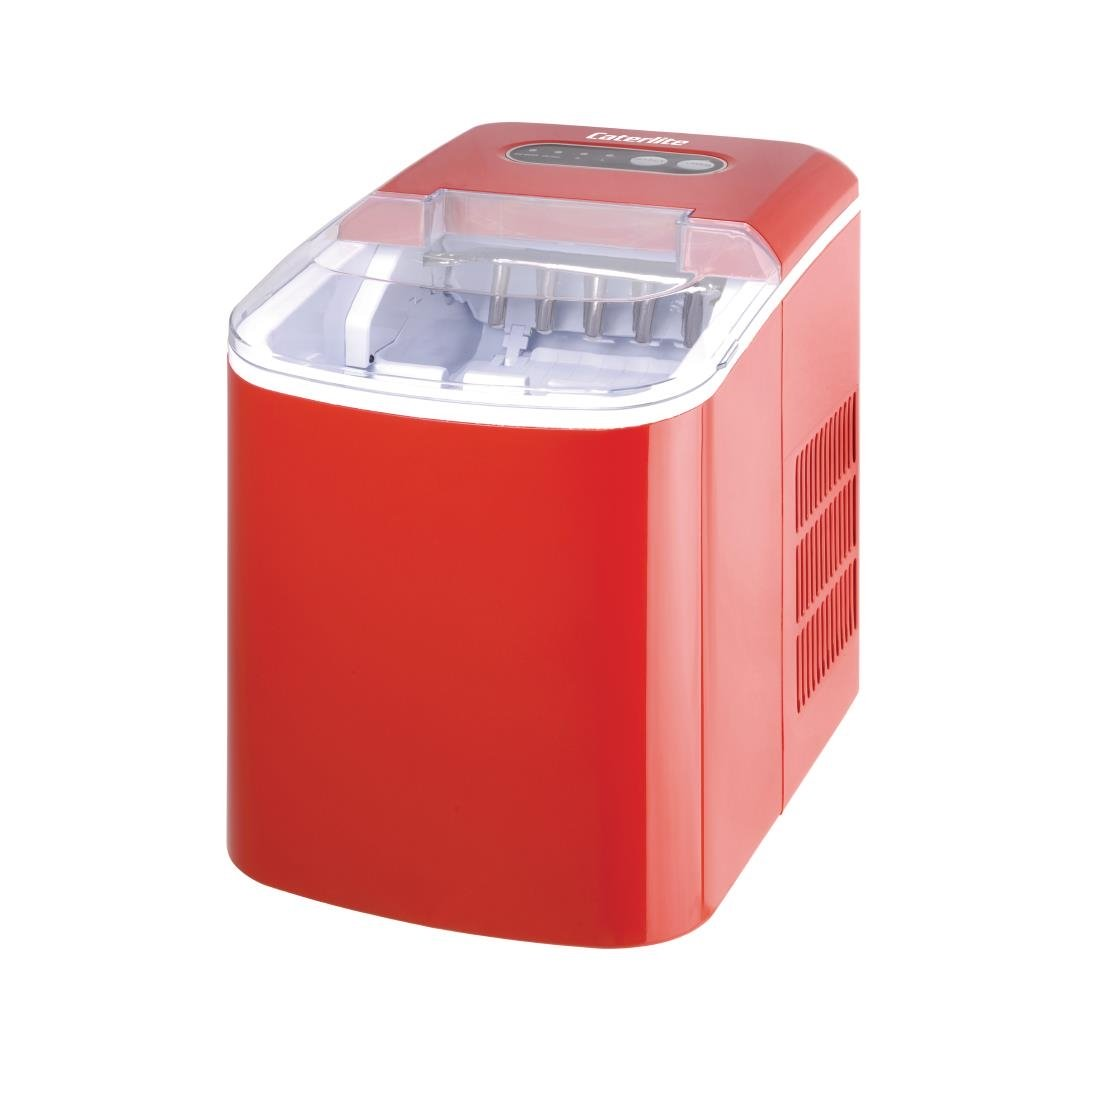 Caterlite Manual Fill Ice Maker - Red